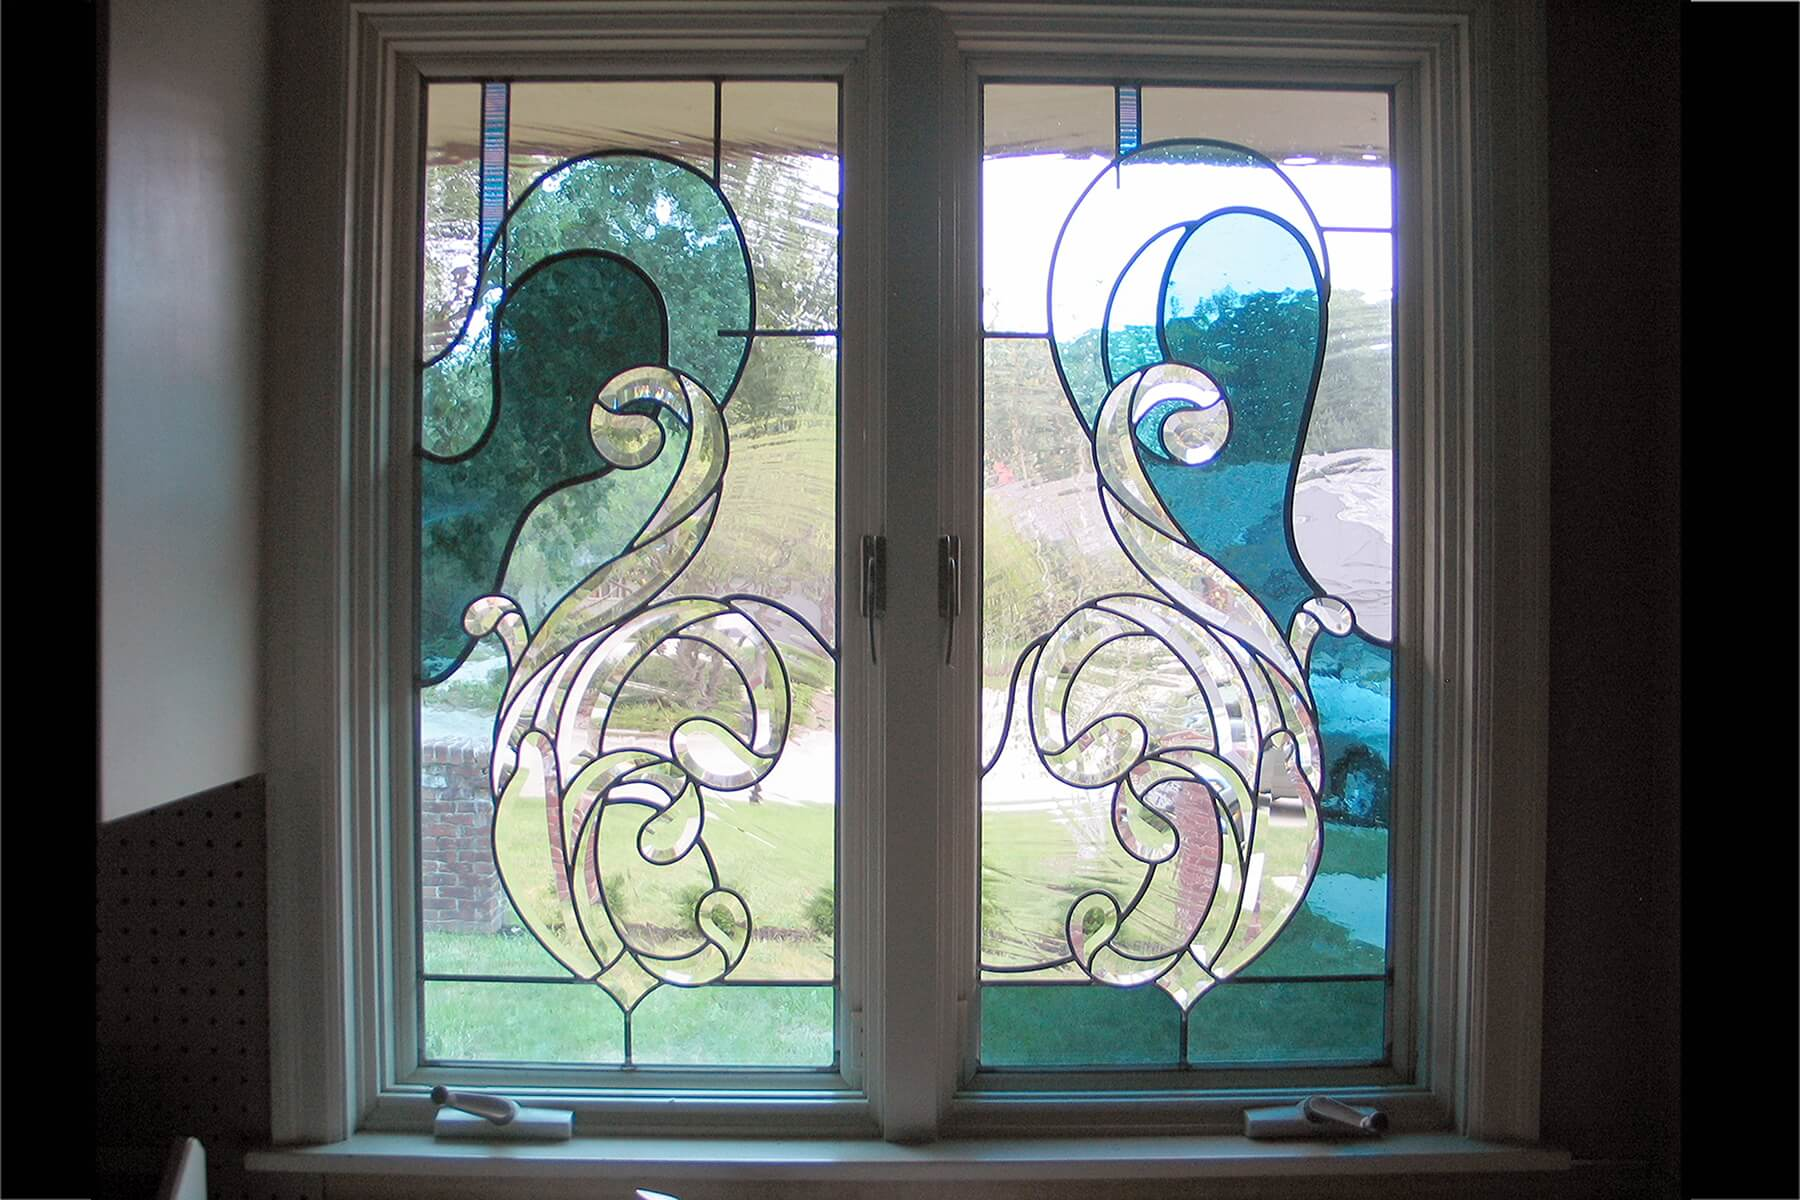 Incredible stained glass window treatments really make for a stunning display